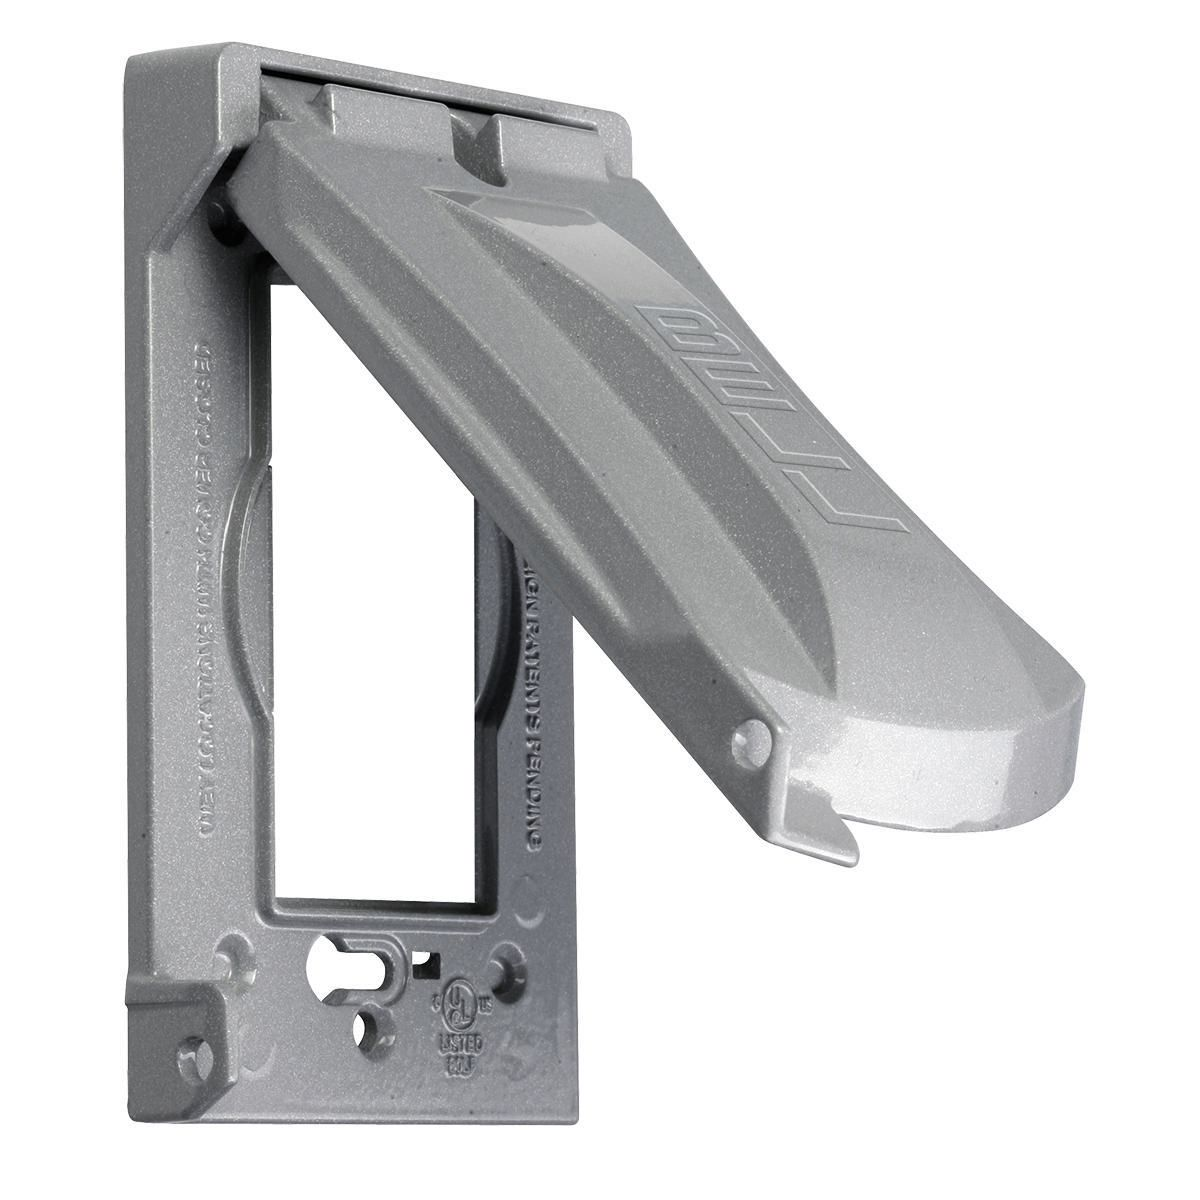 MX1050S RACO 1G WP 6 IN 1 GRAY METAL VERTICAL COVER